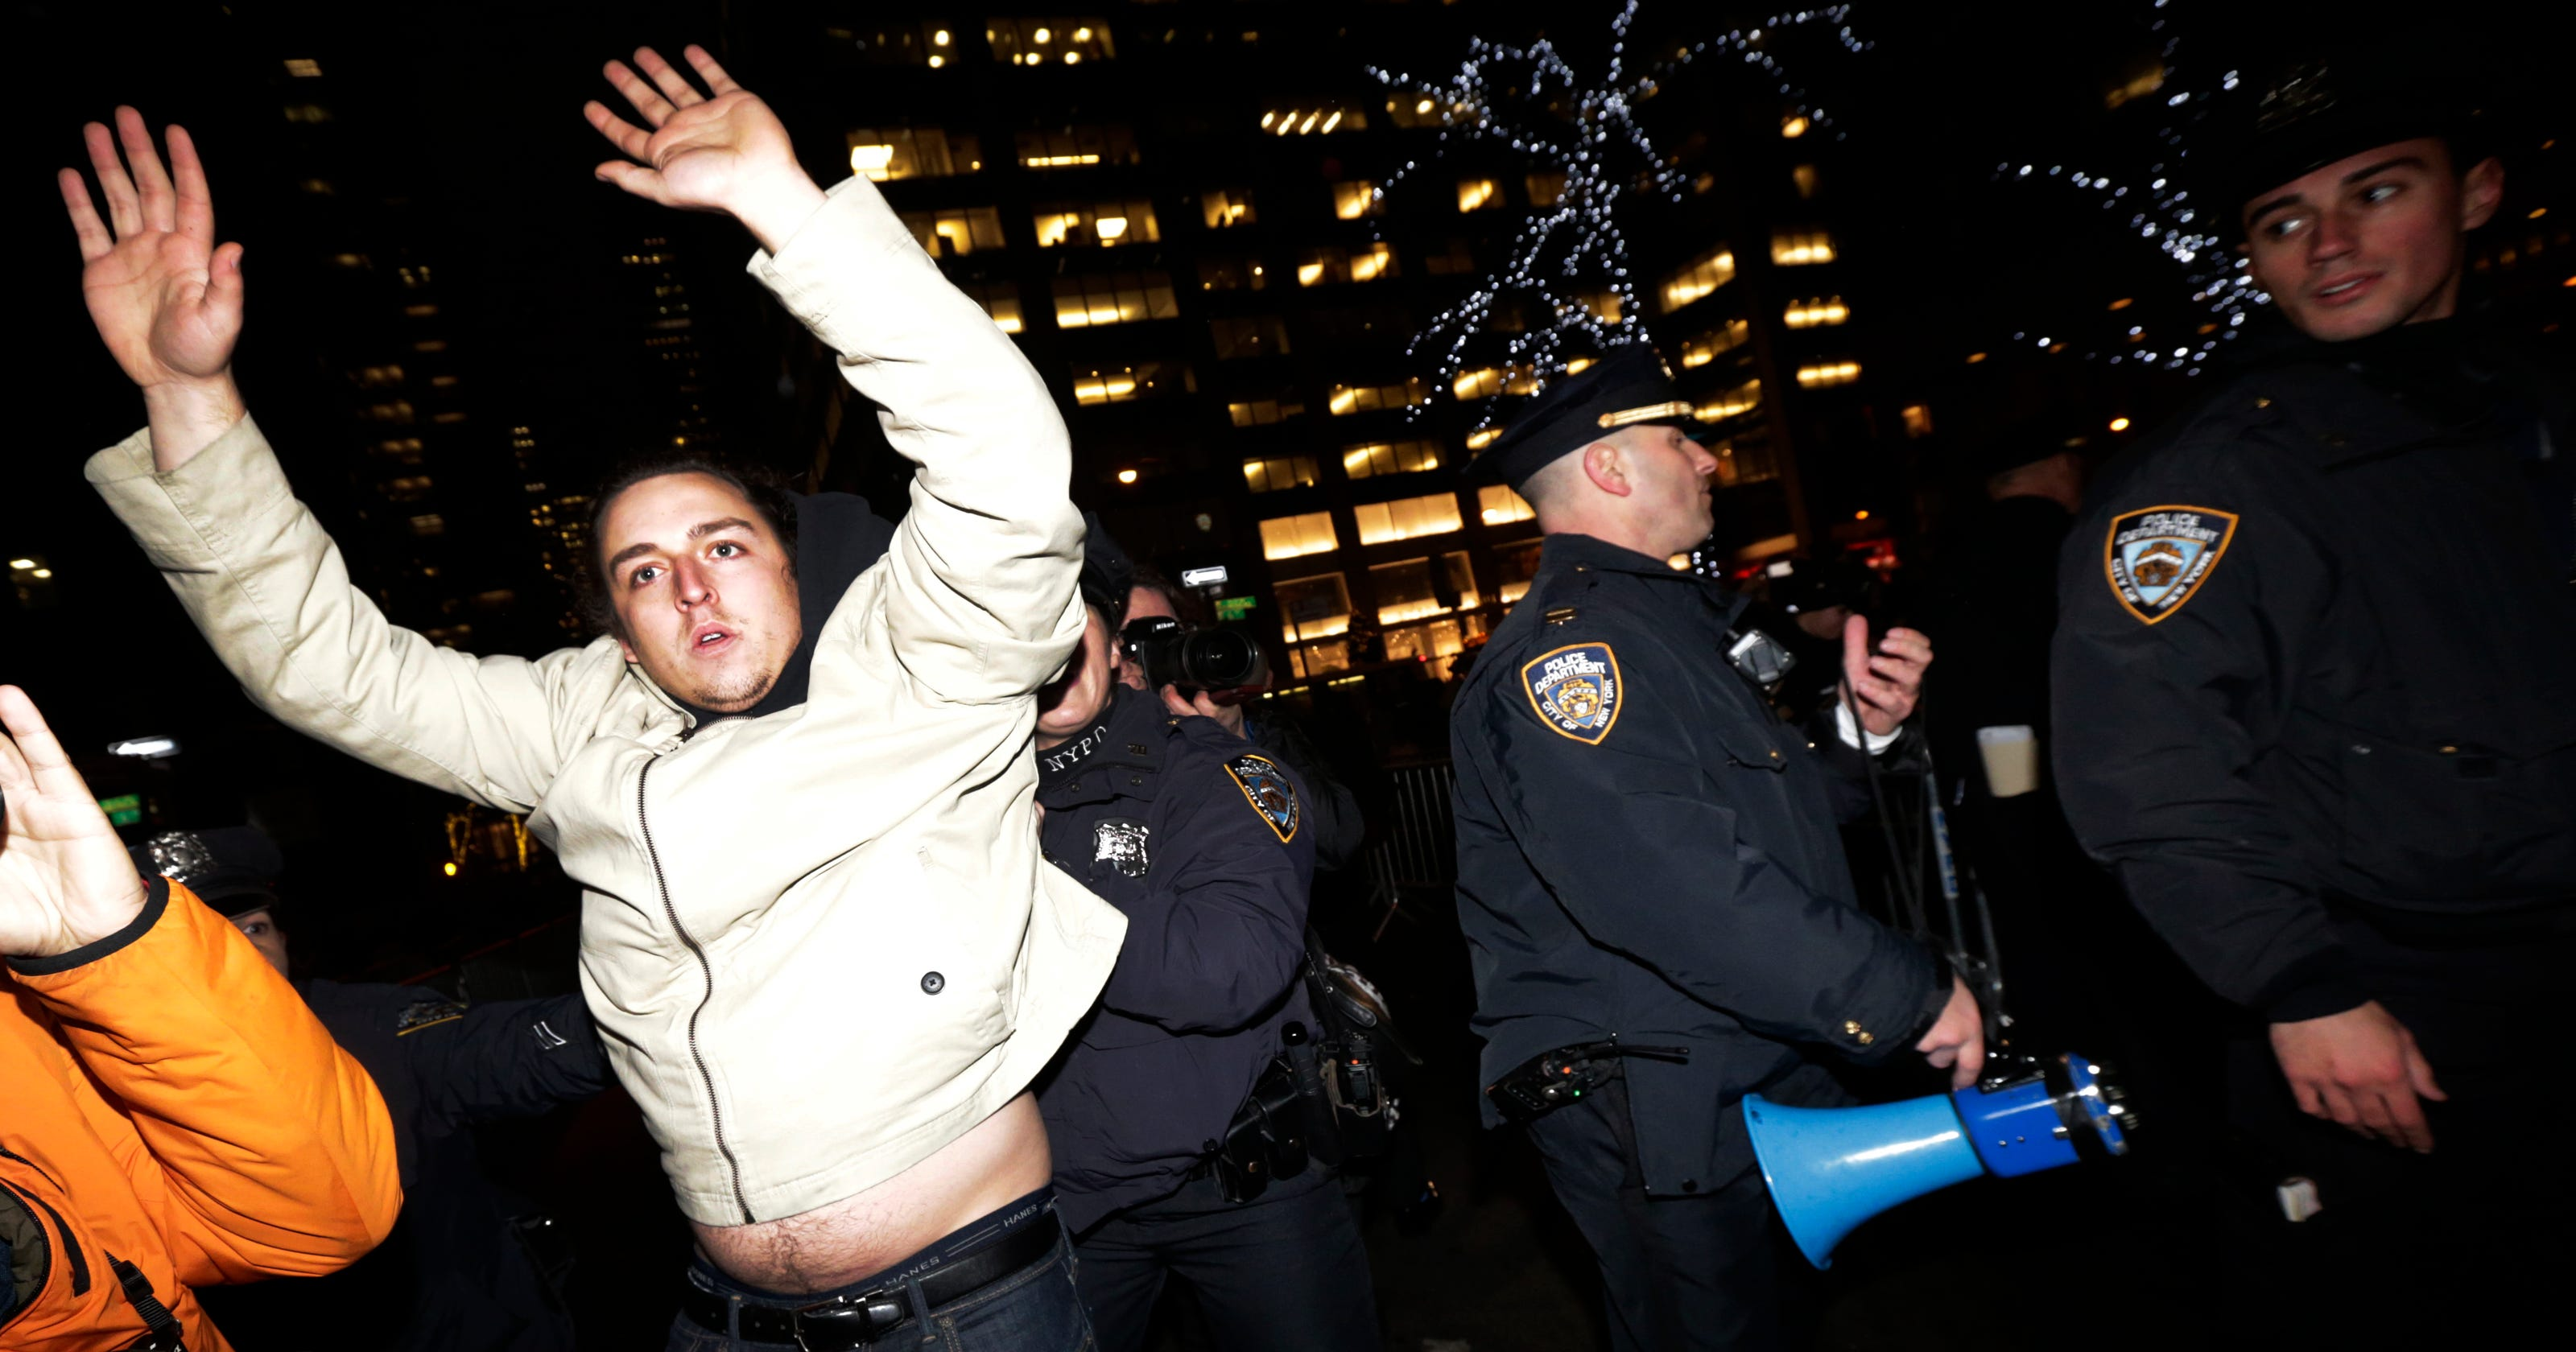 edb002e28f No charges in NYC chokehold death; federal inquiry launched